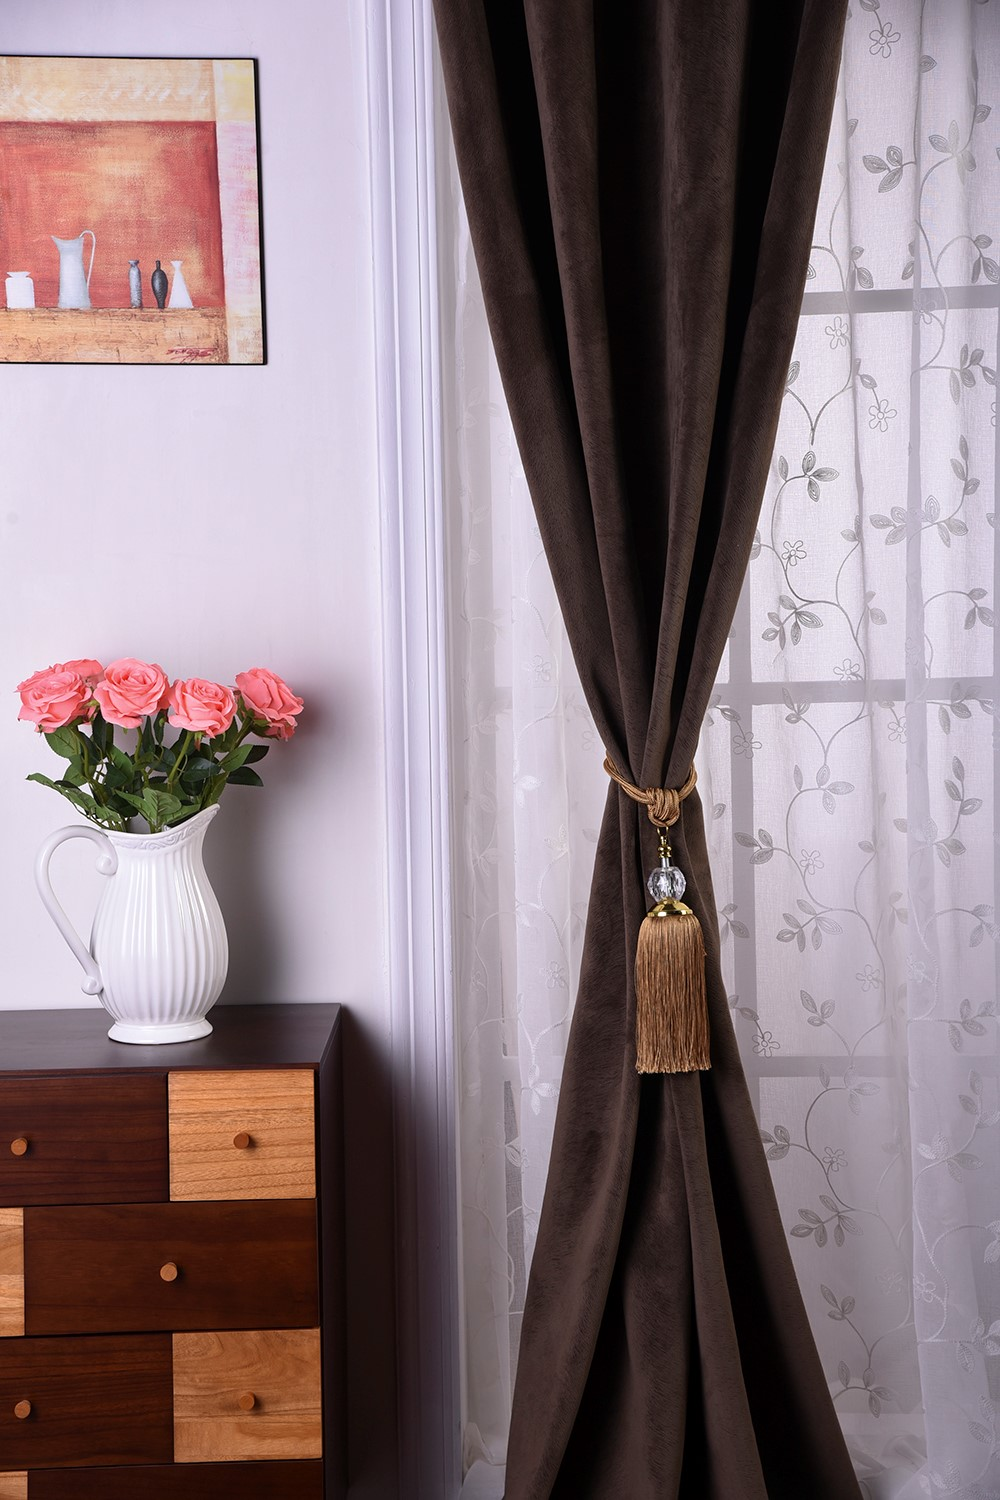 China Manufacturer Glass Window Curtain, Crest Home Design Curtains